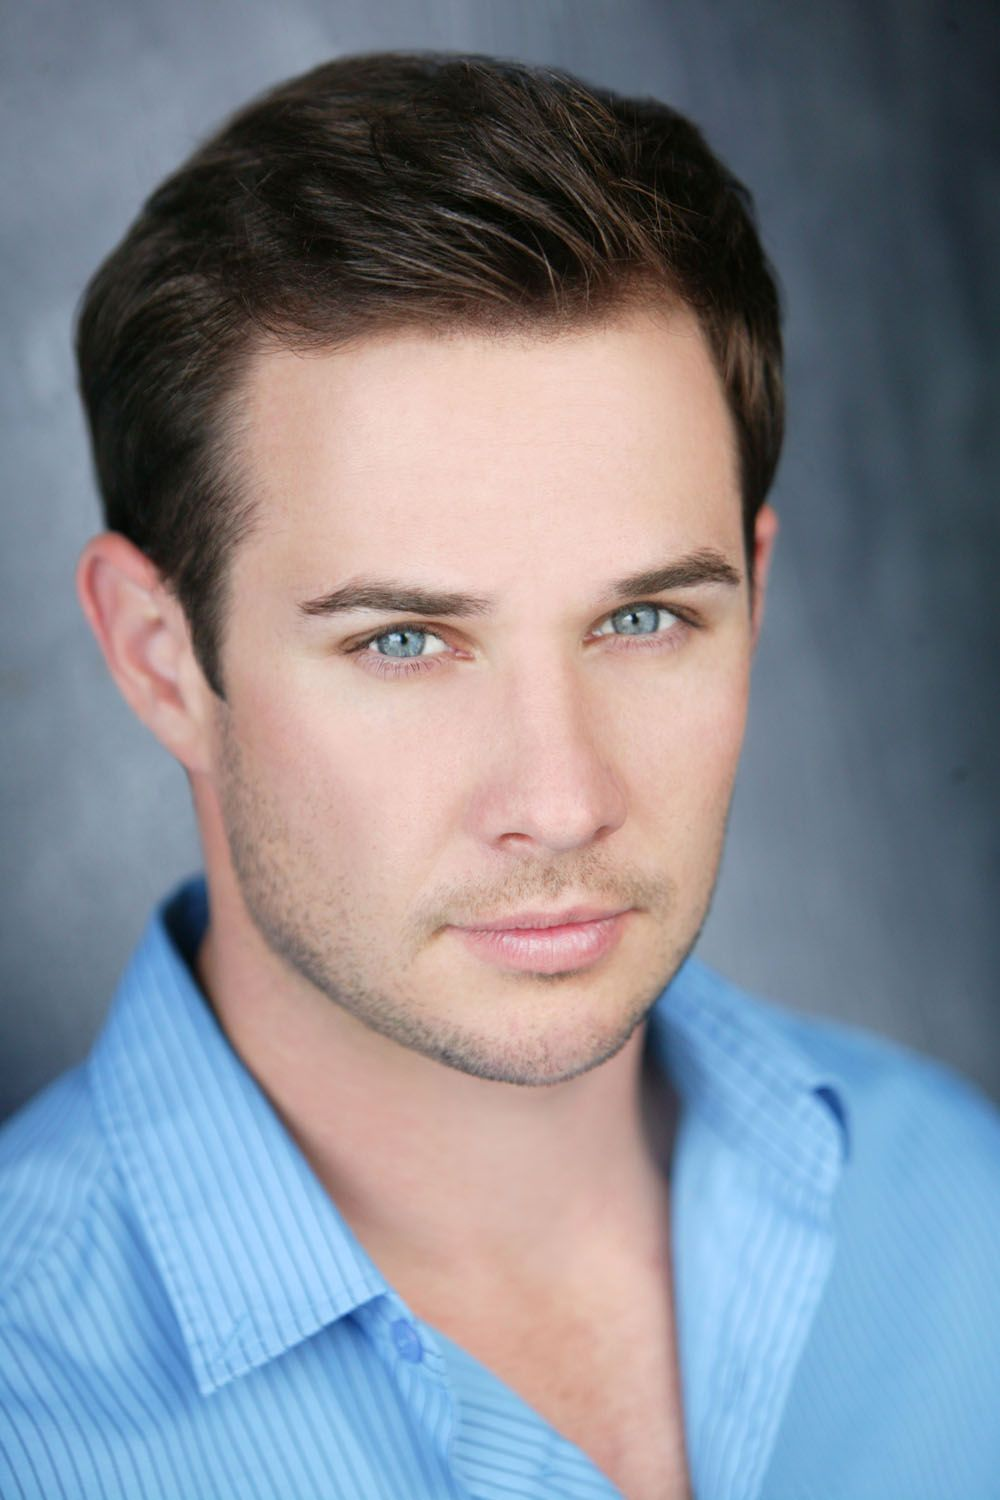 Ryan Merriman - 2017 Dark Brown hair & chic hair style. Current length:  short hair